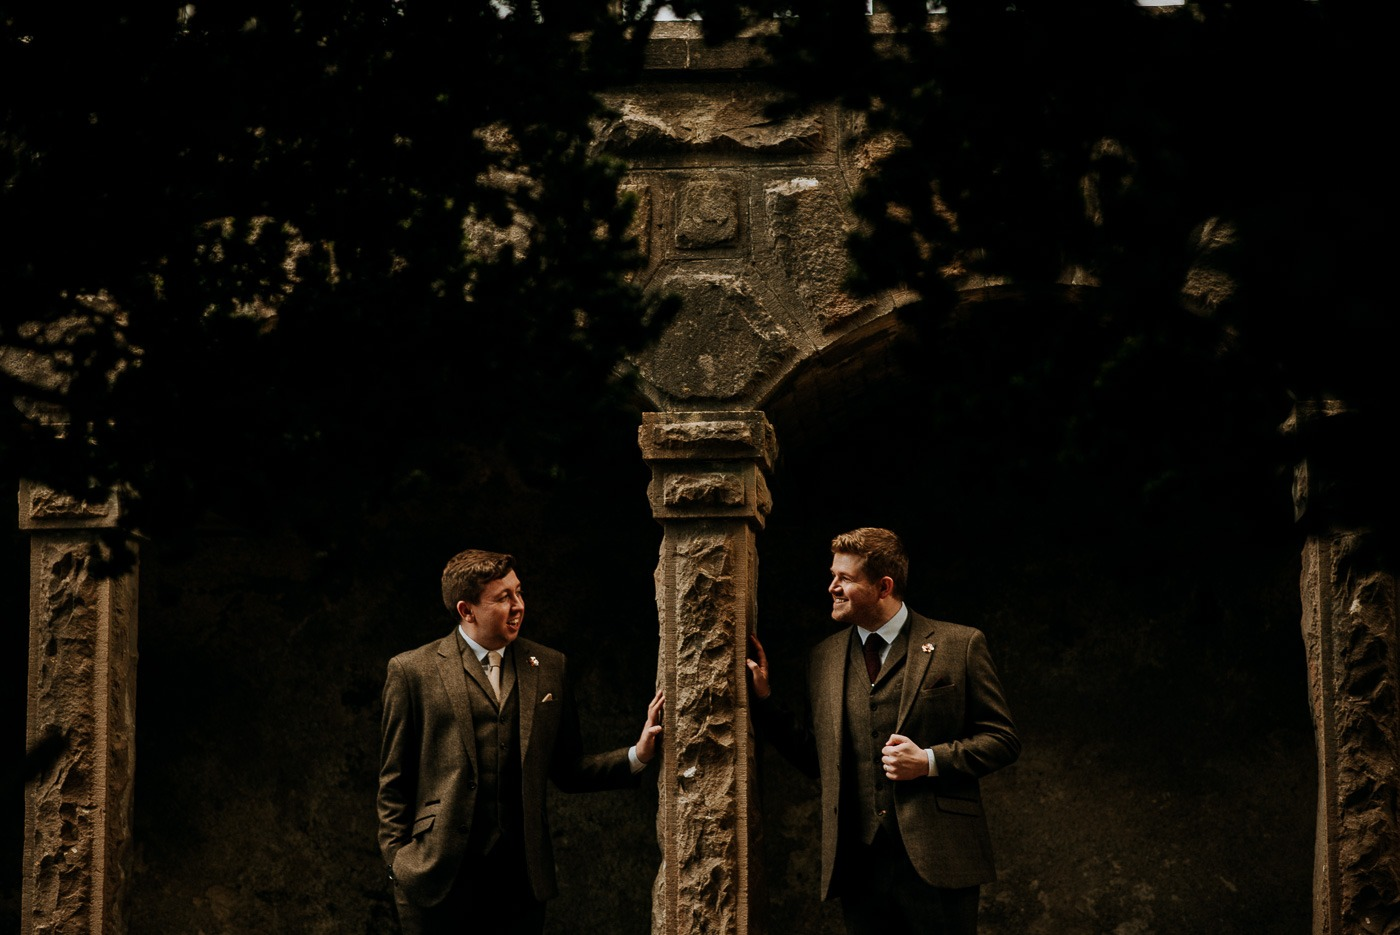 Sneak Peek of Conor & David's Wedding at Belleek Castle